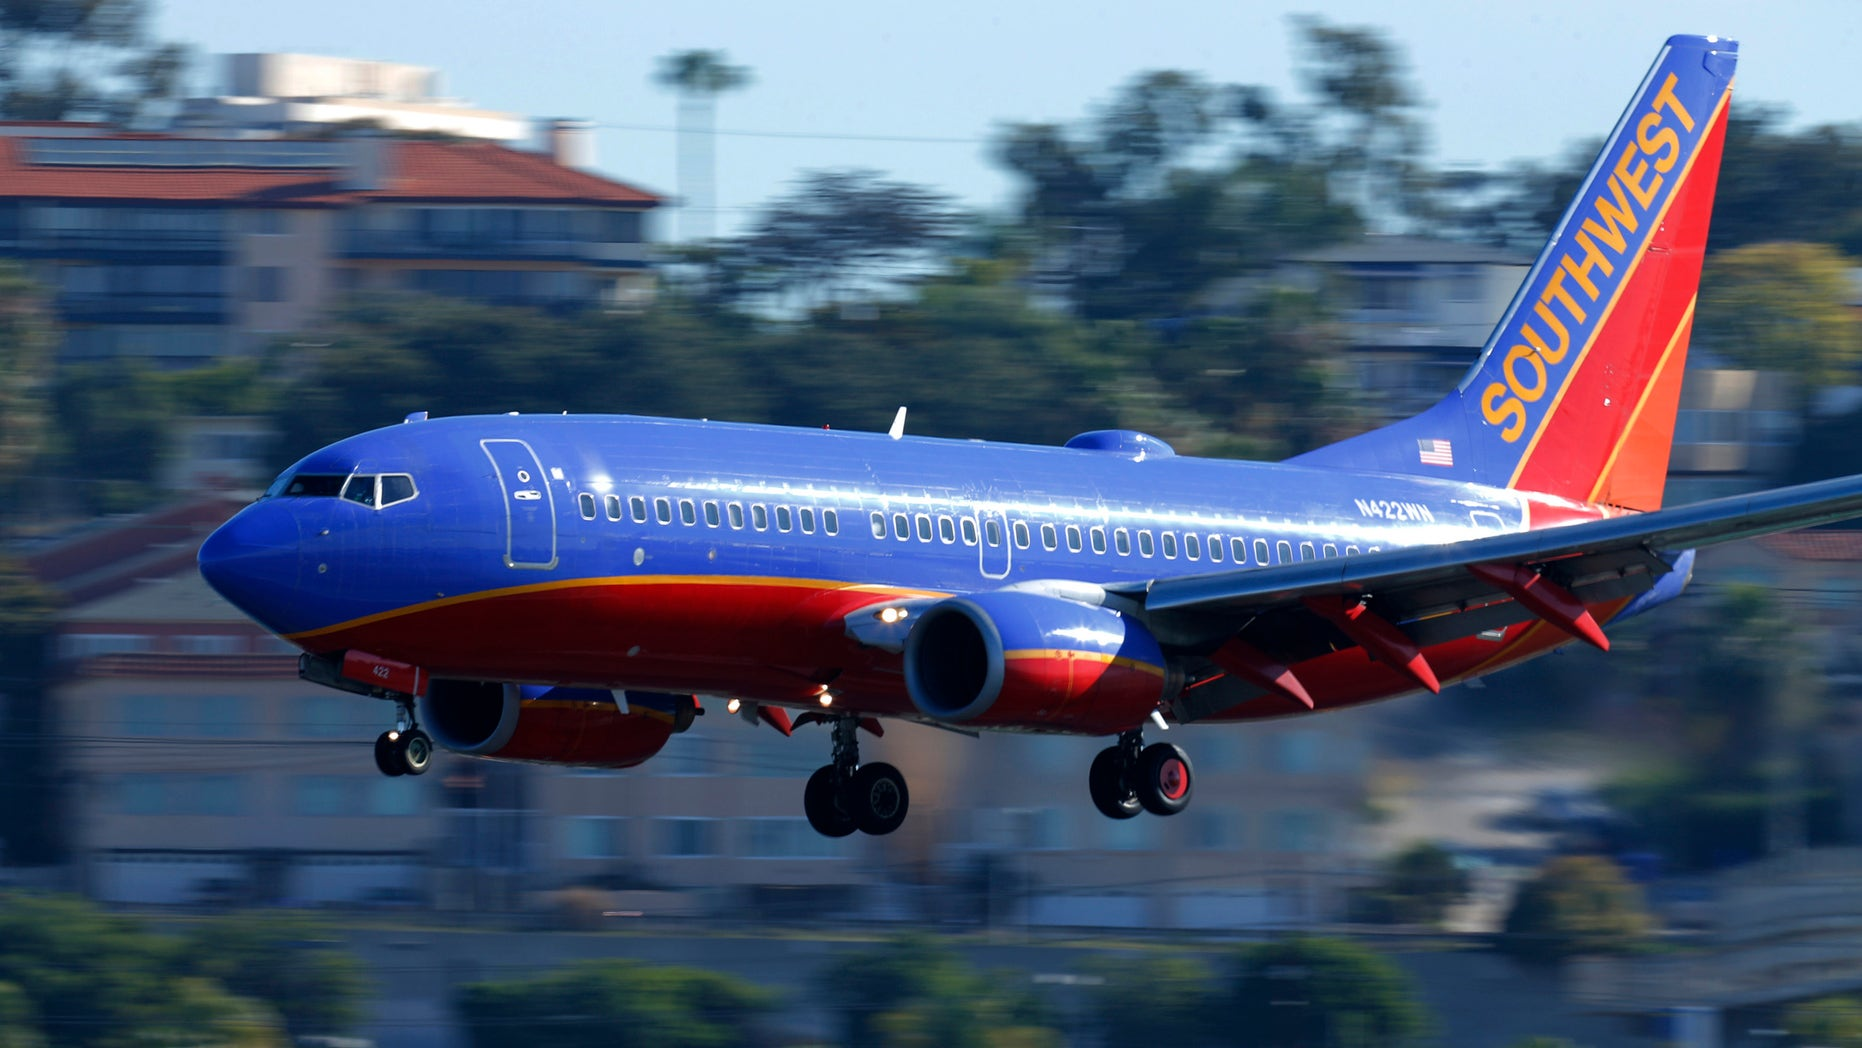 Less than a week after launching service to three Mexican cities, Southwest Airlines canceled more than 40 flights due to an authorization issue with the Mexican government.